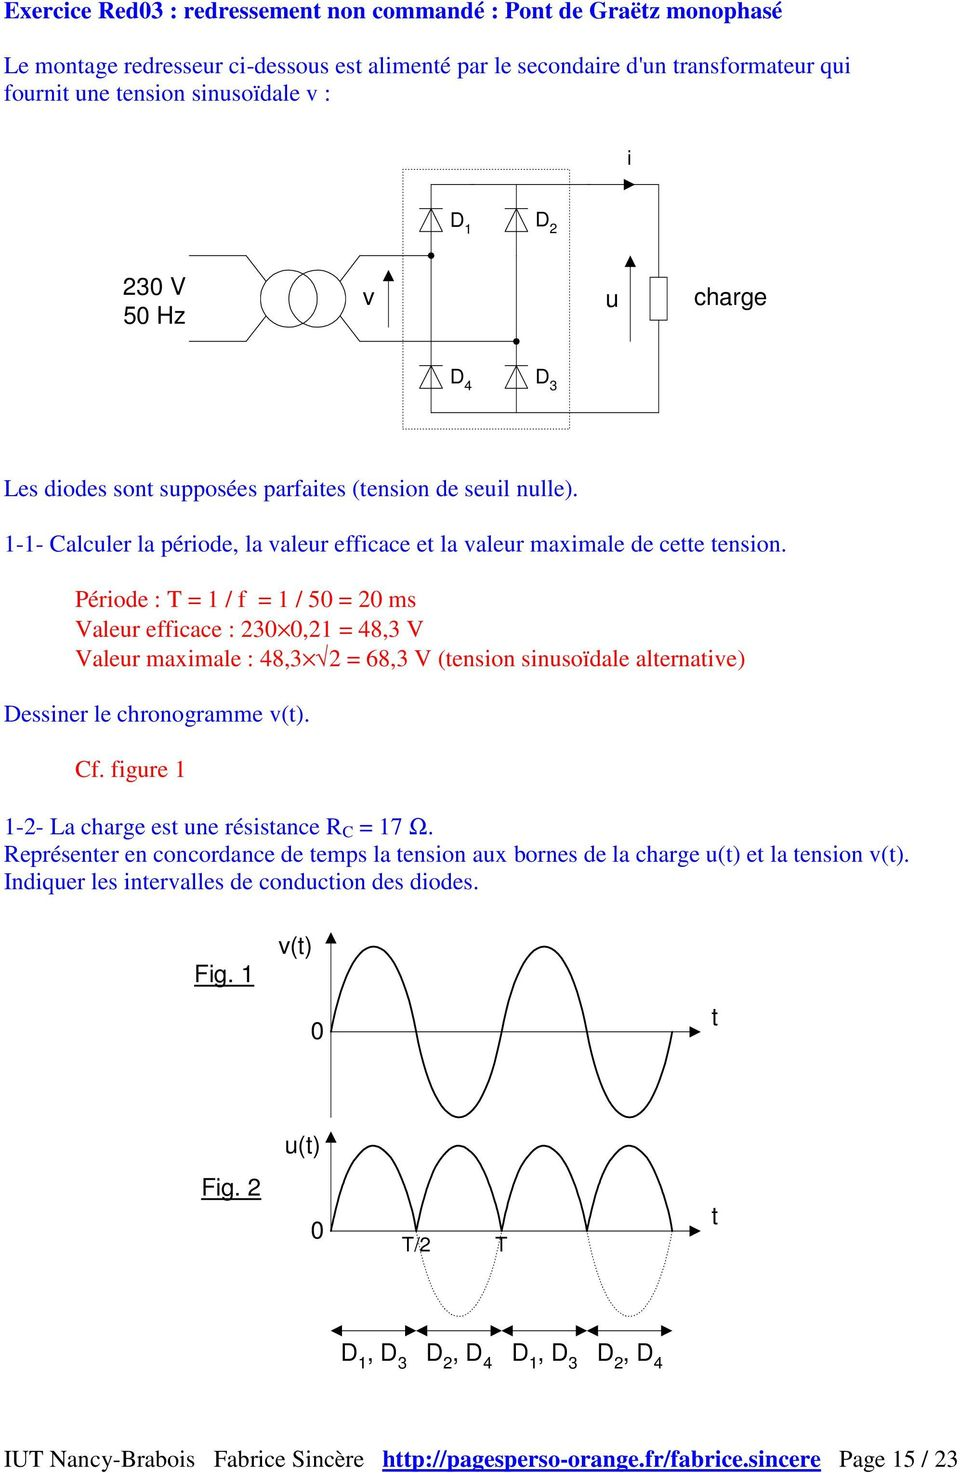 Période : = 1 / f = 1 / 5 = 2 ms Valeur efficace : 23,21 = 48,3 V Valeur maximale : 48,3 2 = 68,3 V (tension sinusoïdale alternative) Dessiner le chronogramme v. Cf.